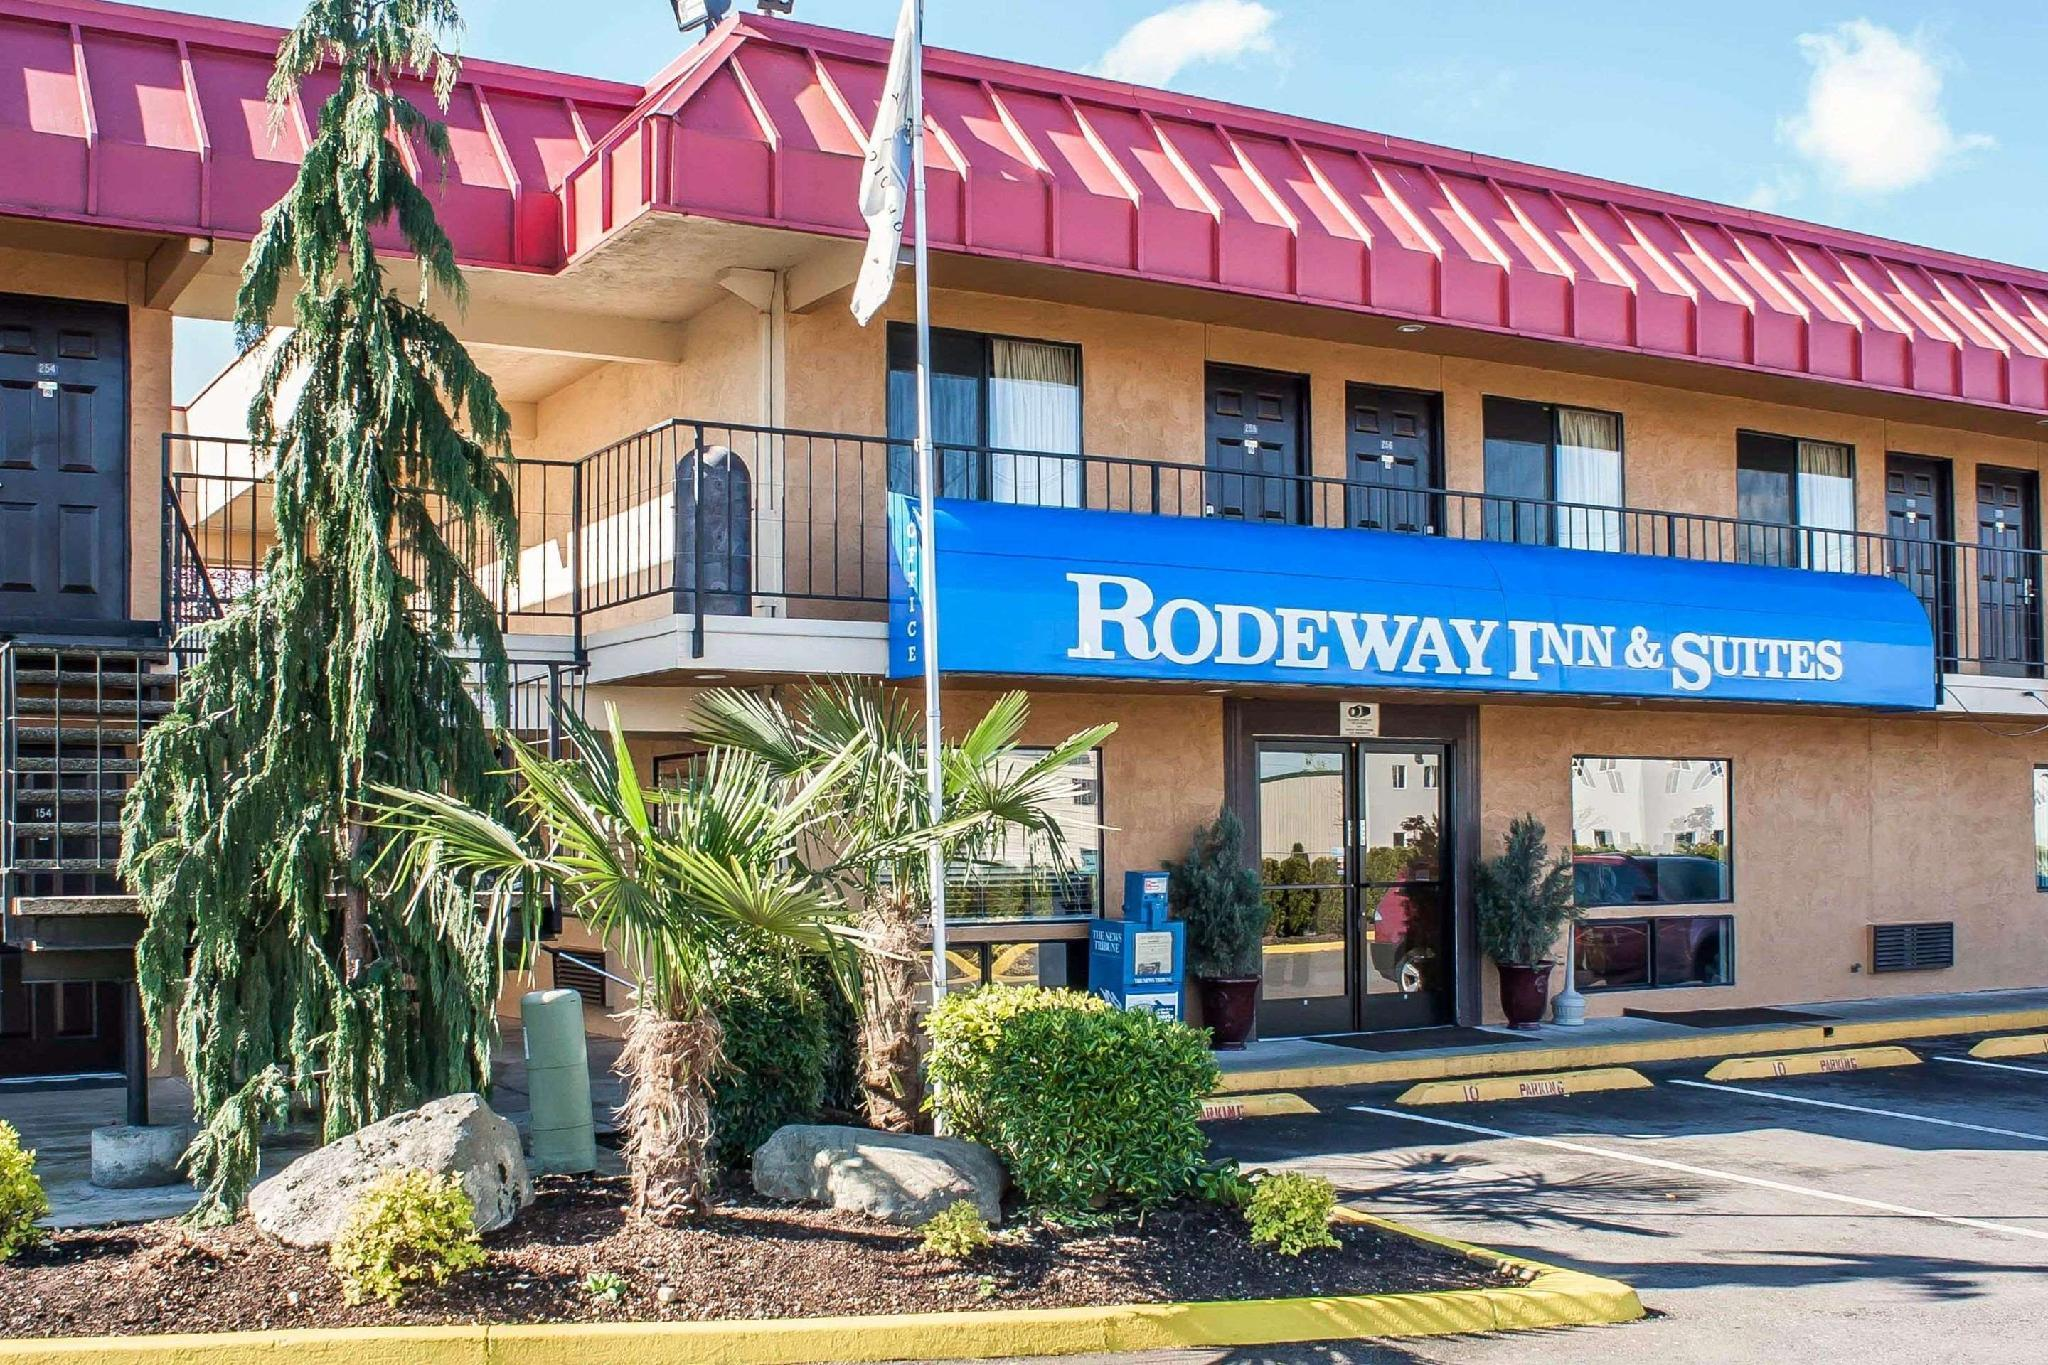 Rodeway Inn And Suites Fife